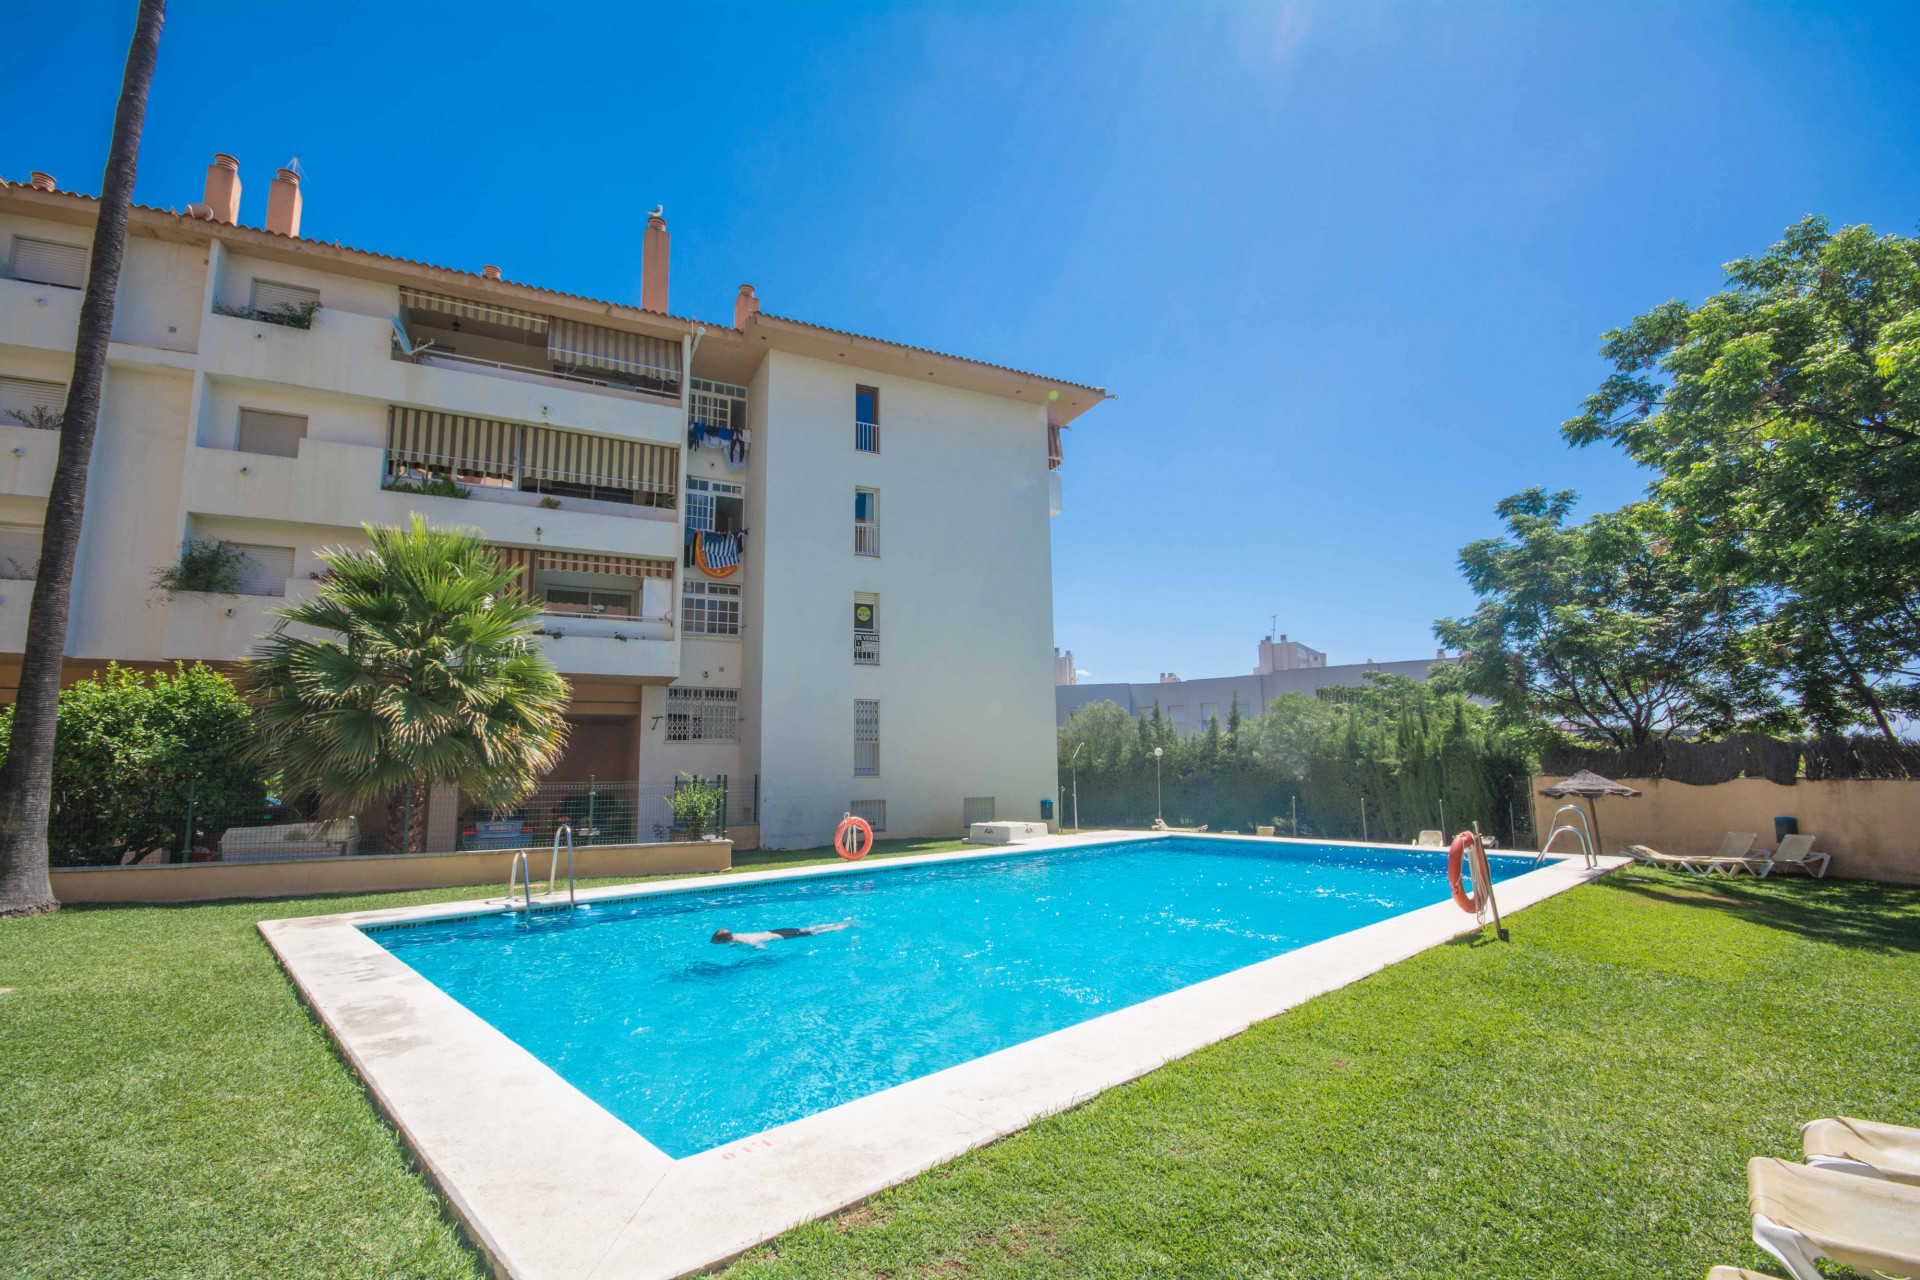 Apartment for sale in the center of Marbella